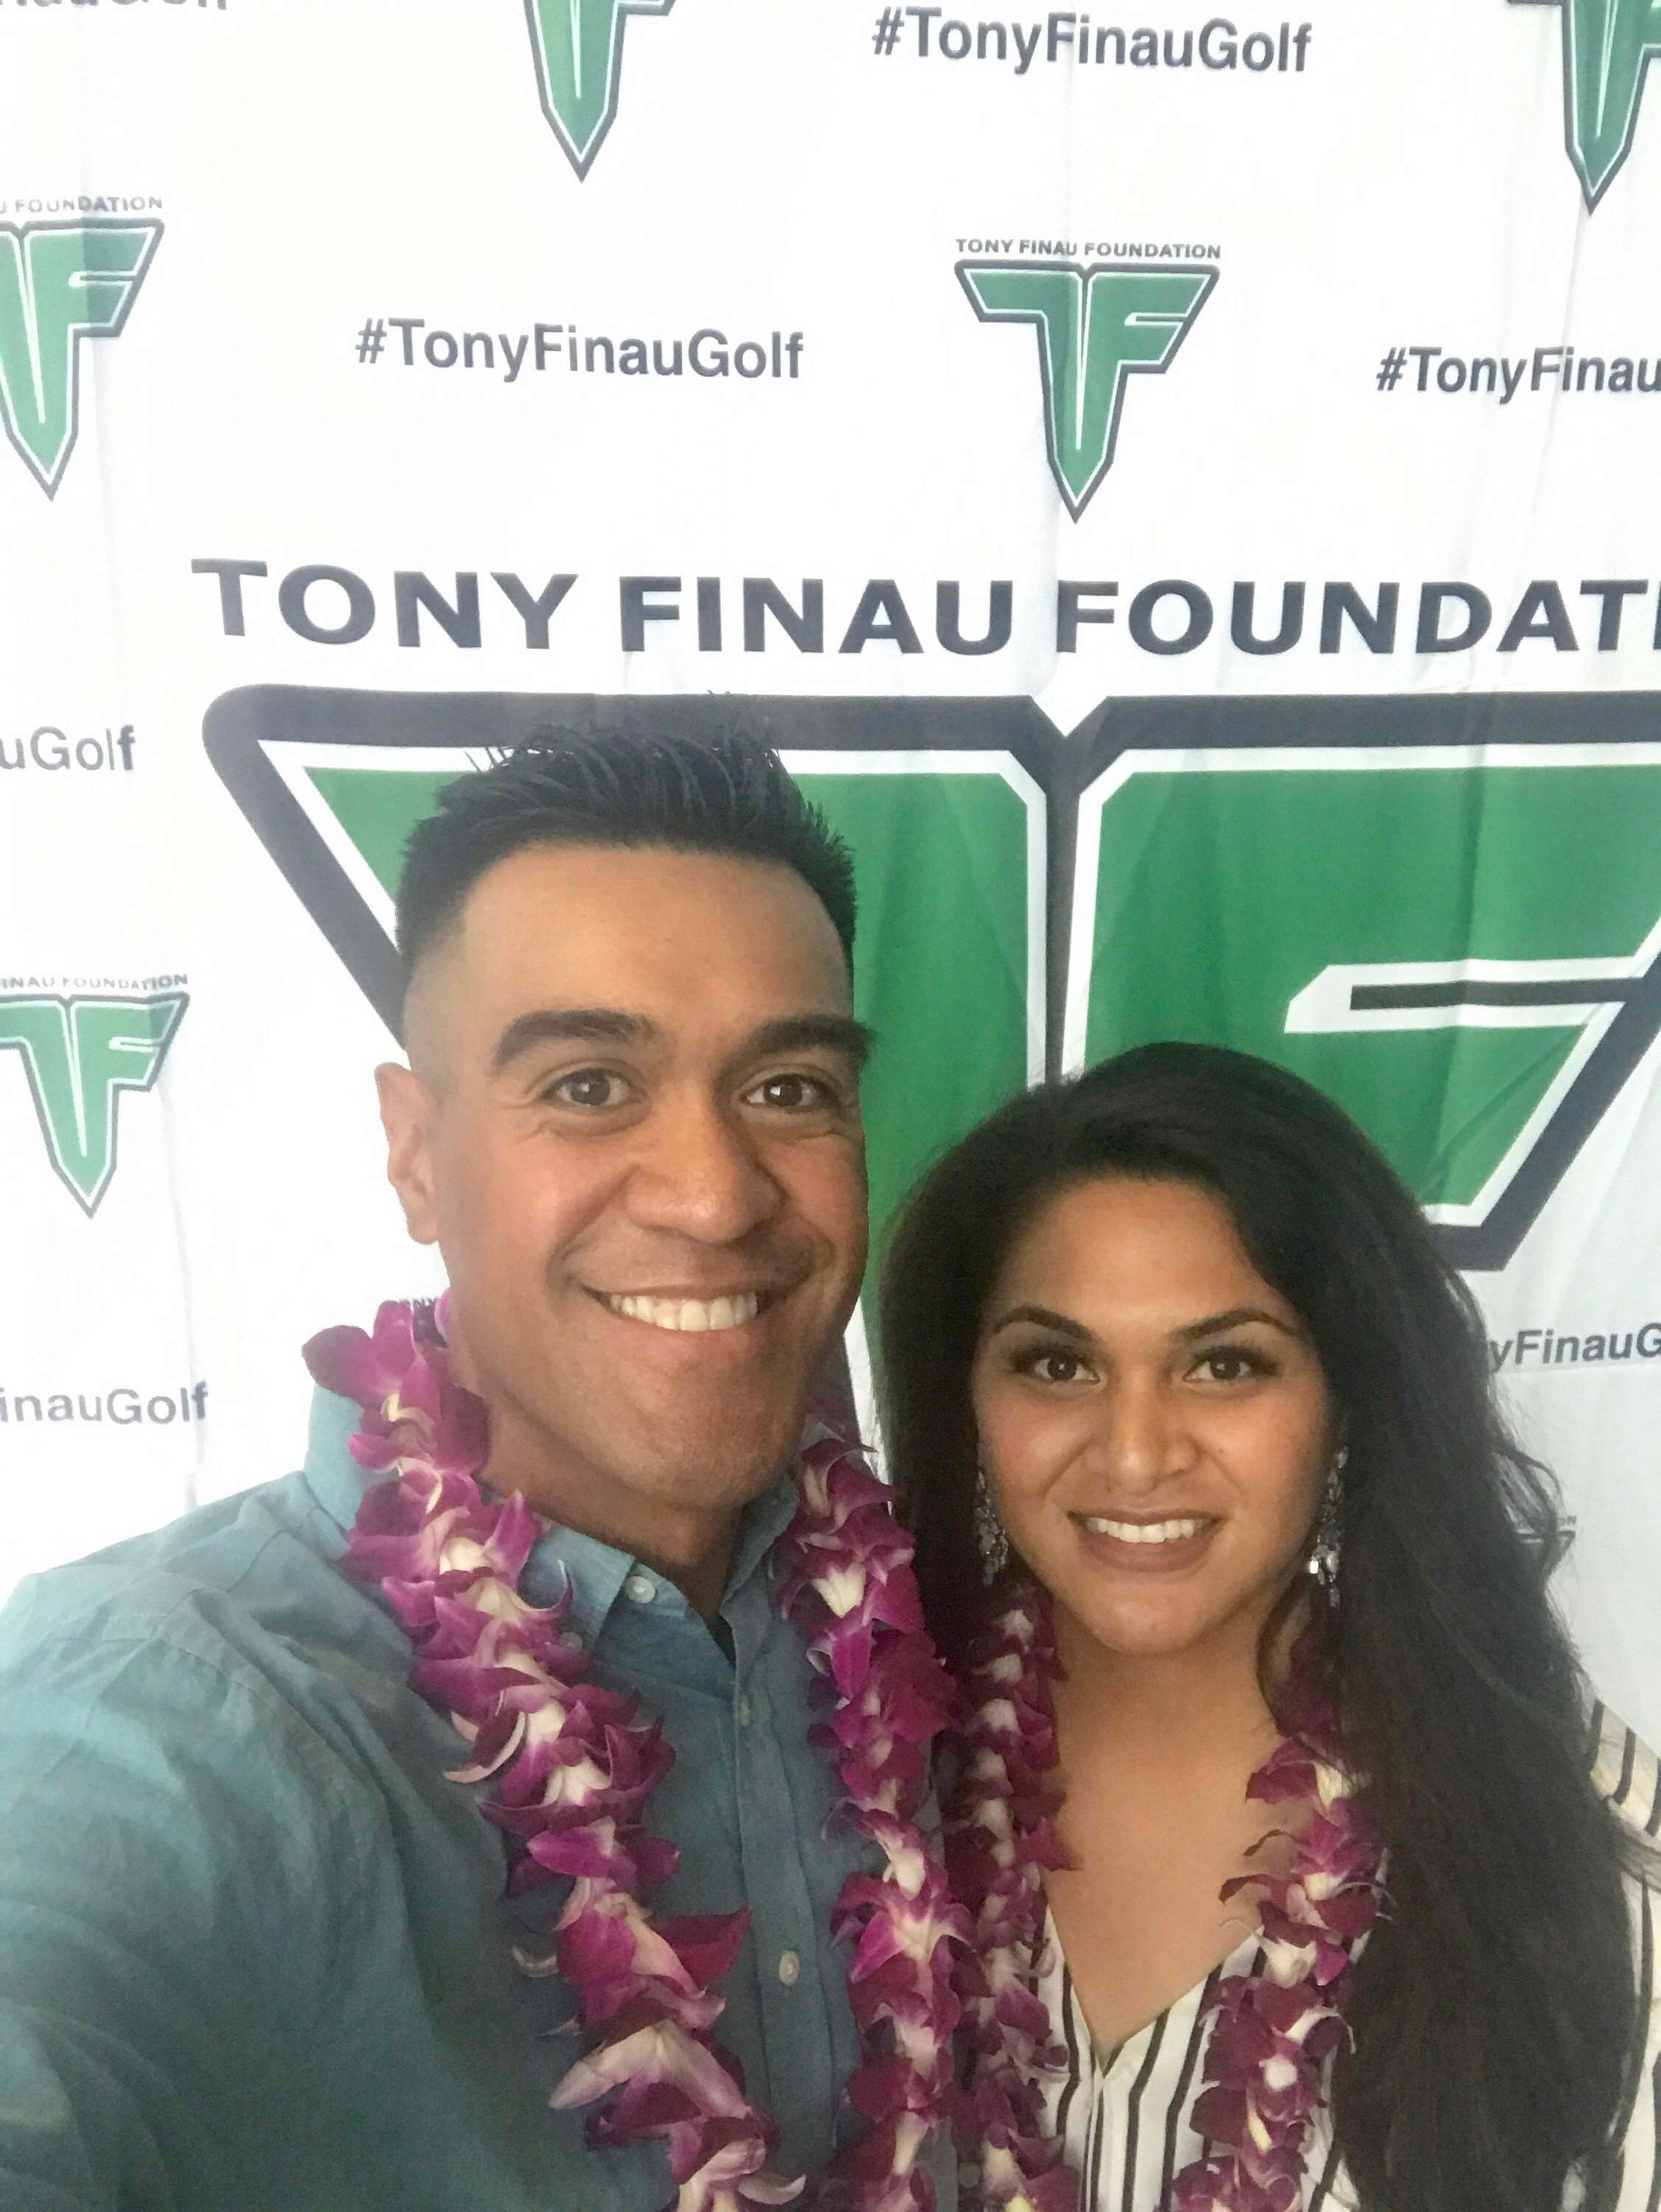 Tony Finau and Alayna Finau pose for a photo by a Tony Finau Foundation backdrop.